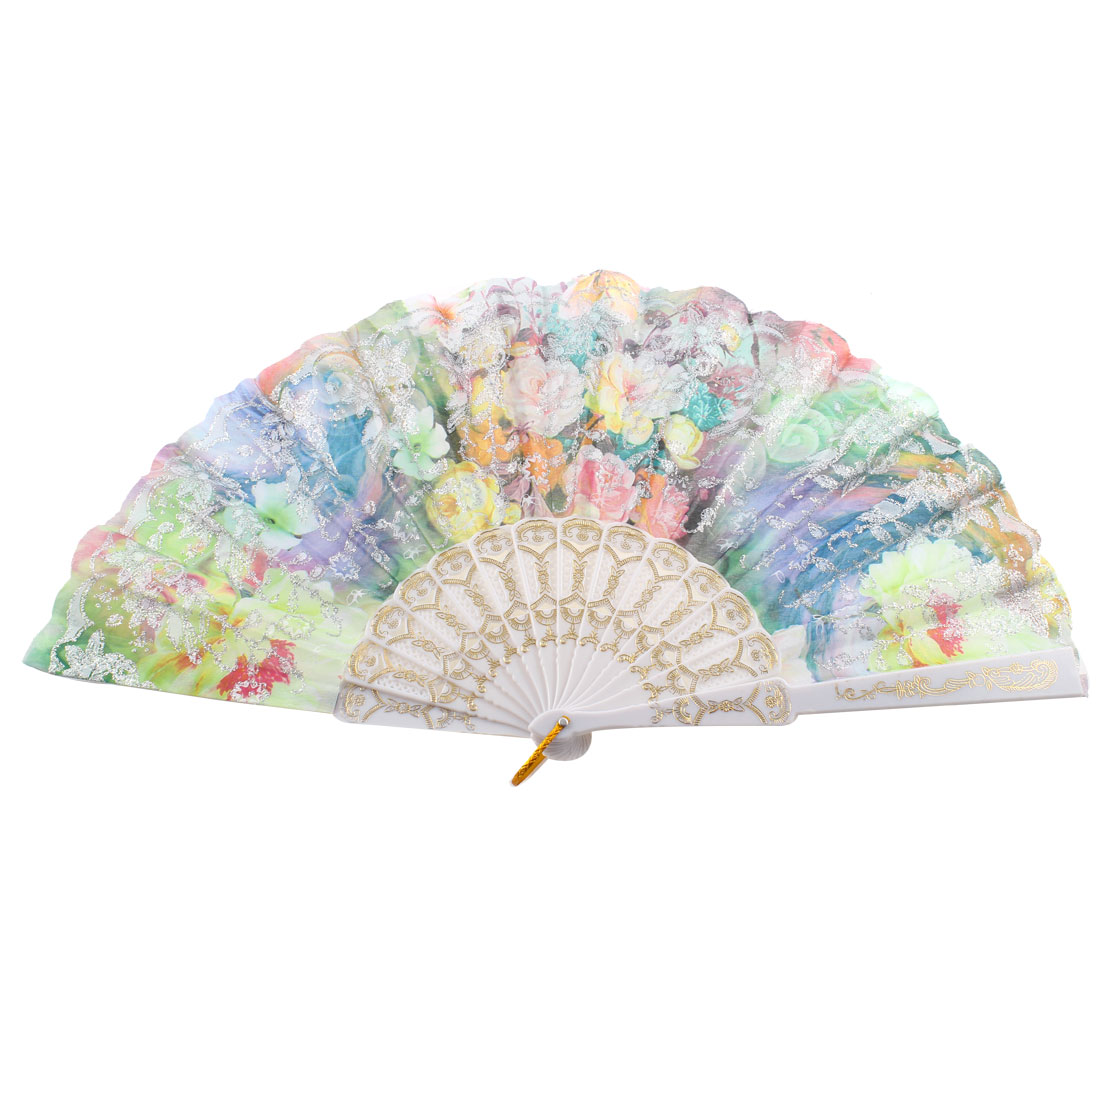 Silver Tone Glittery Powder Decor Chinese Style Floral Print Folding Hand Fan